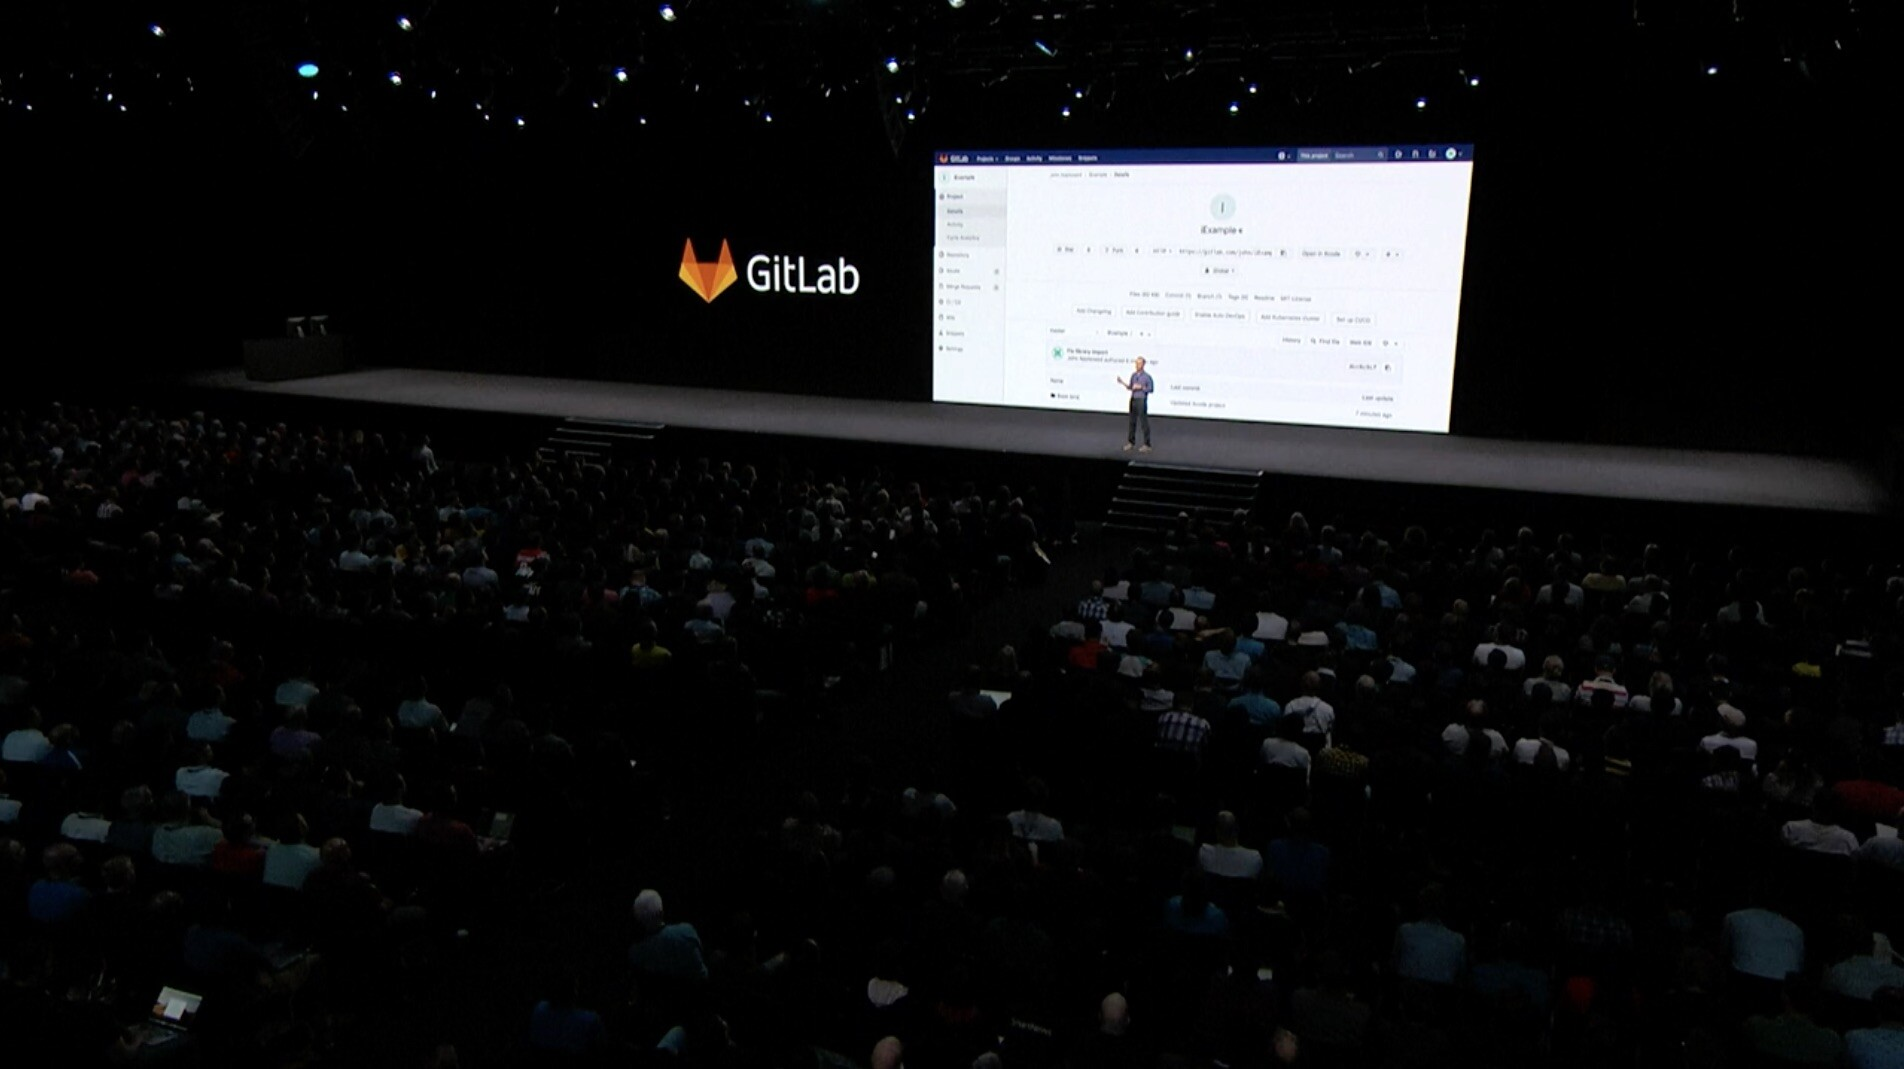 Announcing GitLab one-click clone to Xcode | GitLab